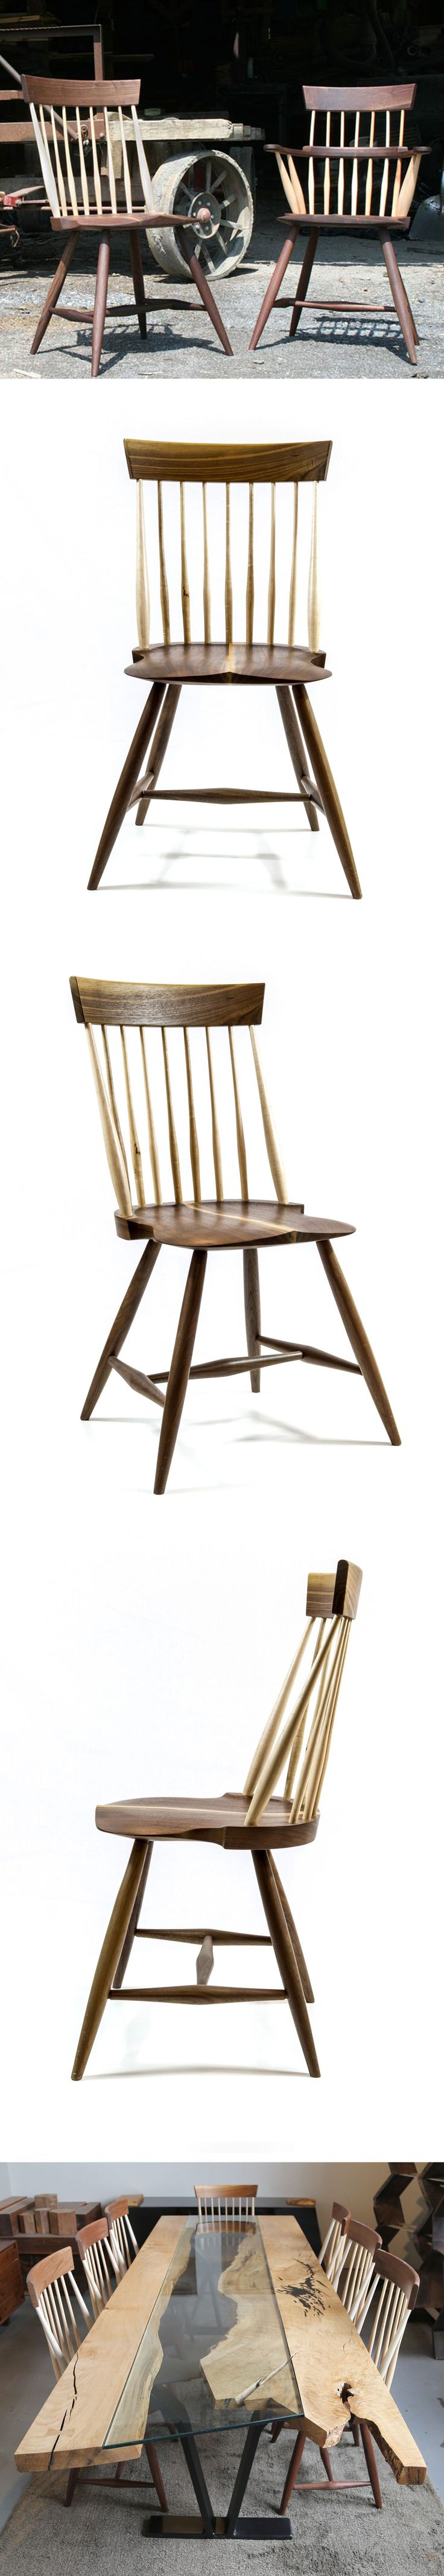 Berkshire Chair Craftsmanship And Woodworking Skills Are Incorporated Here  For A Simple Yet Sophisticated Dining Chair